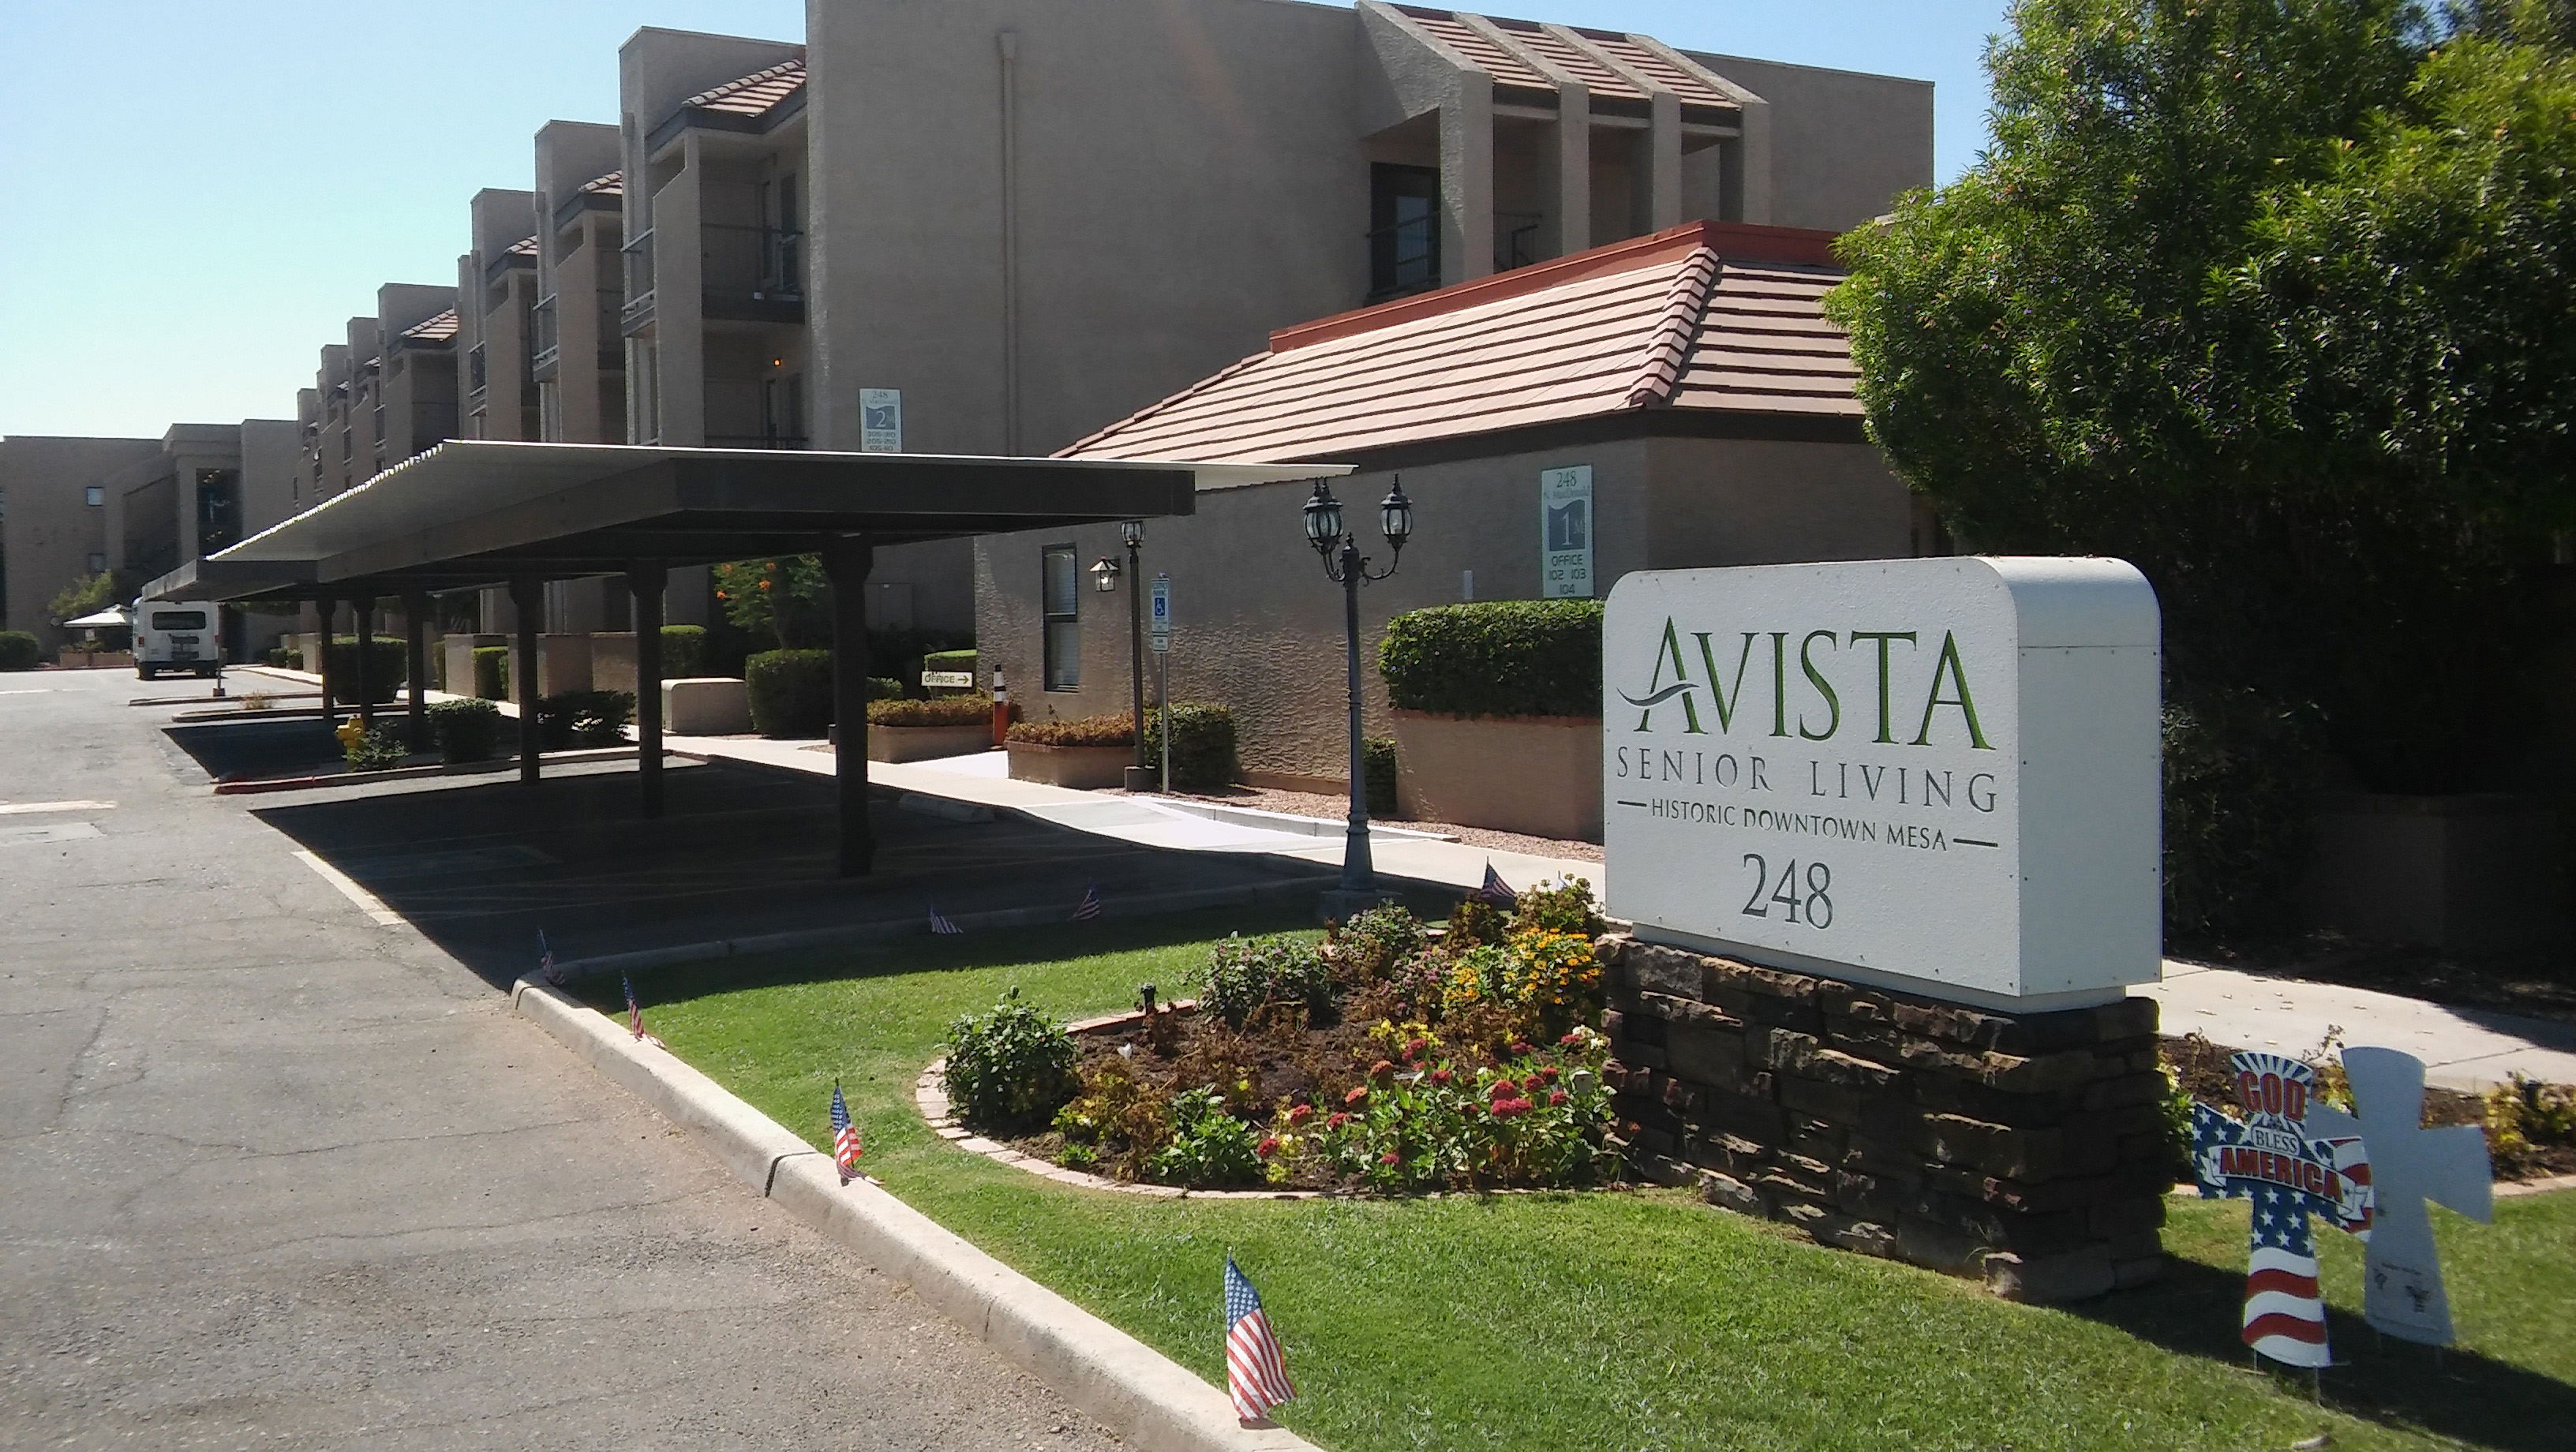 MIB – Avista Senior Living